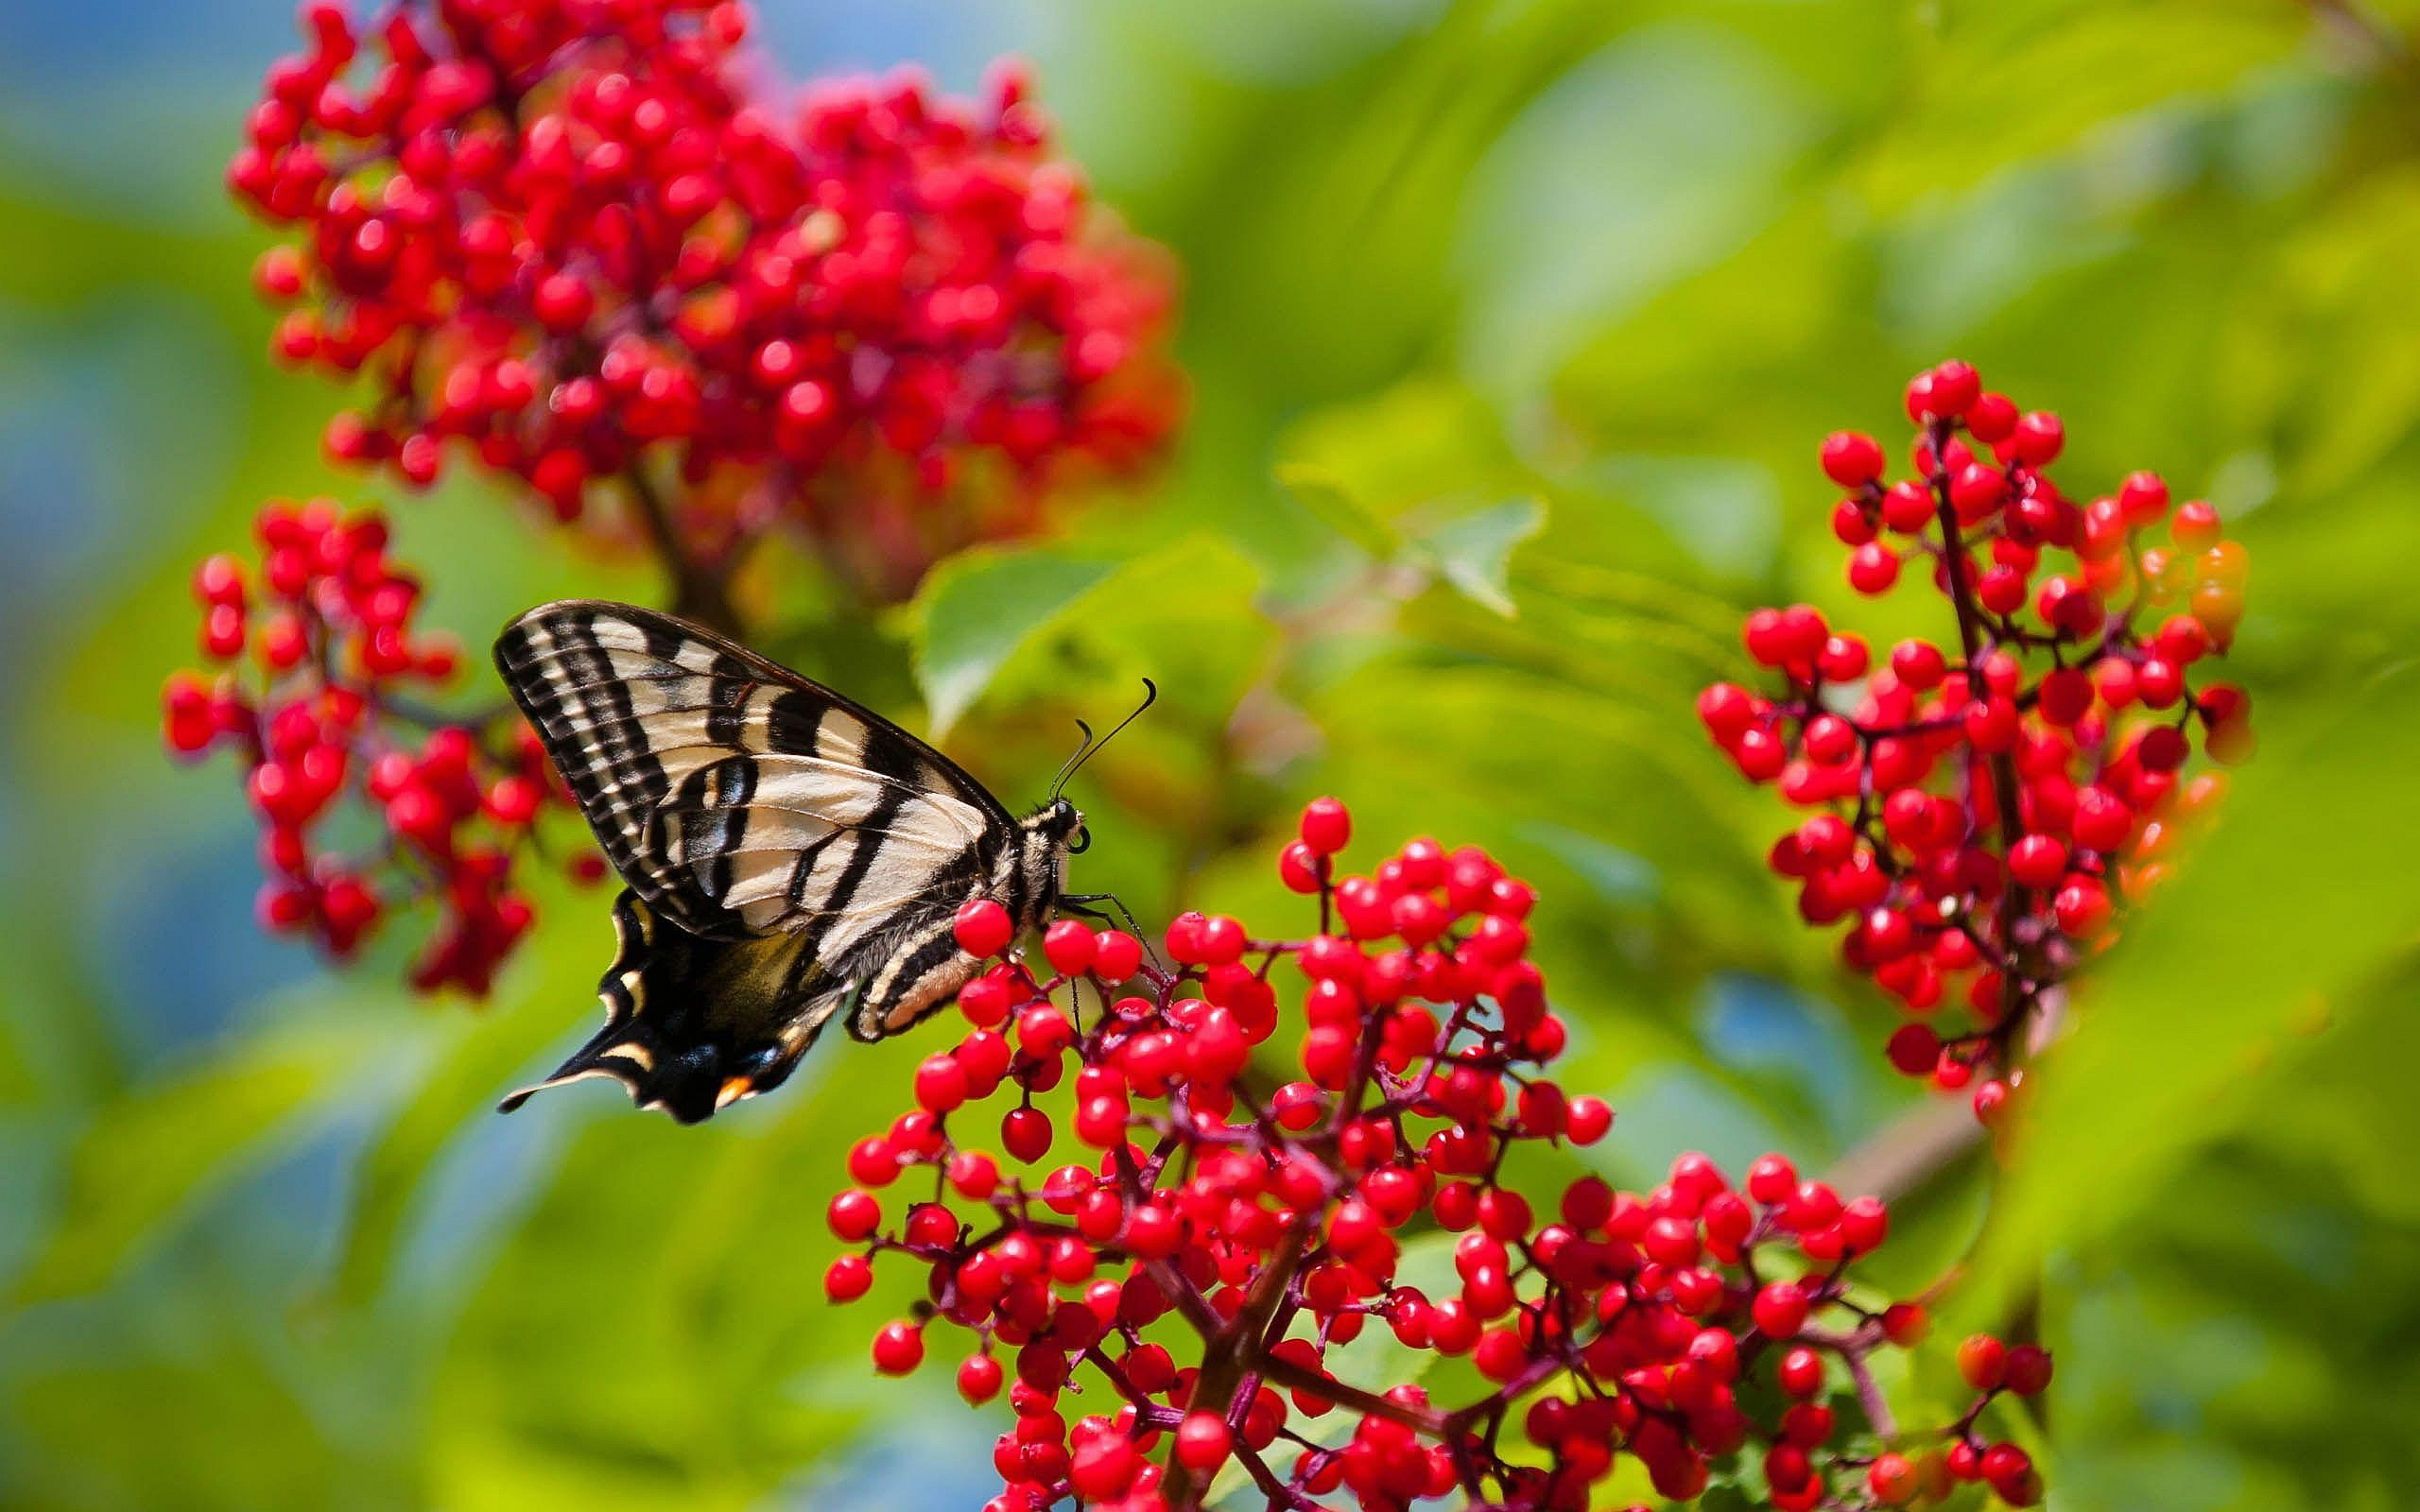 Butterfly Fruits Wallpaper in 2560x1600 Widescreen